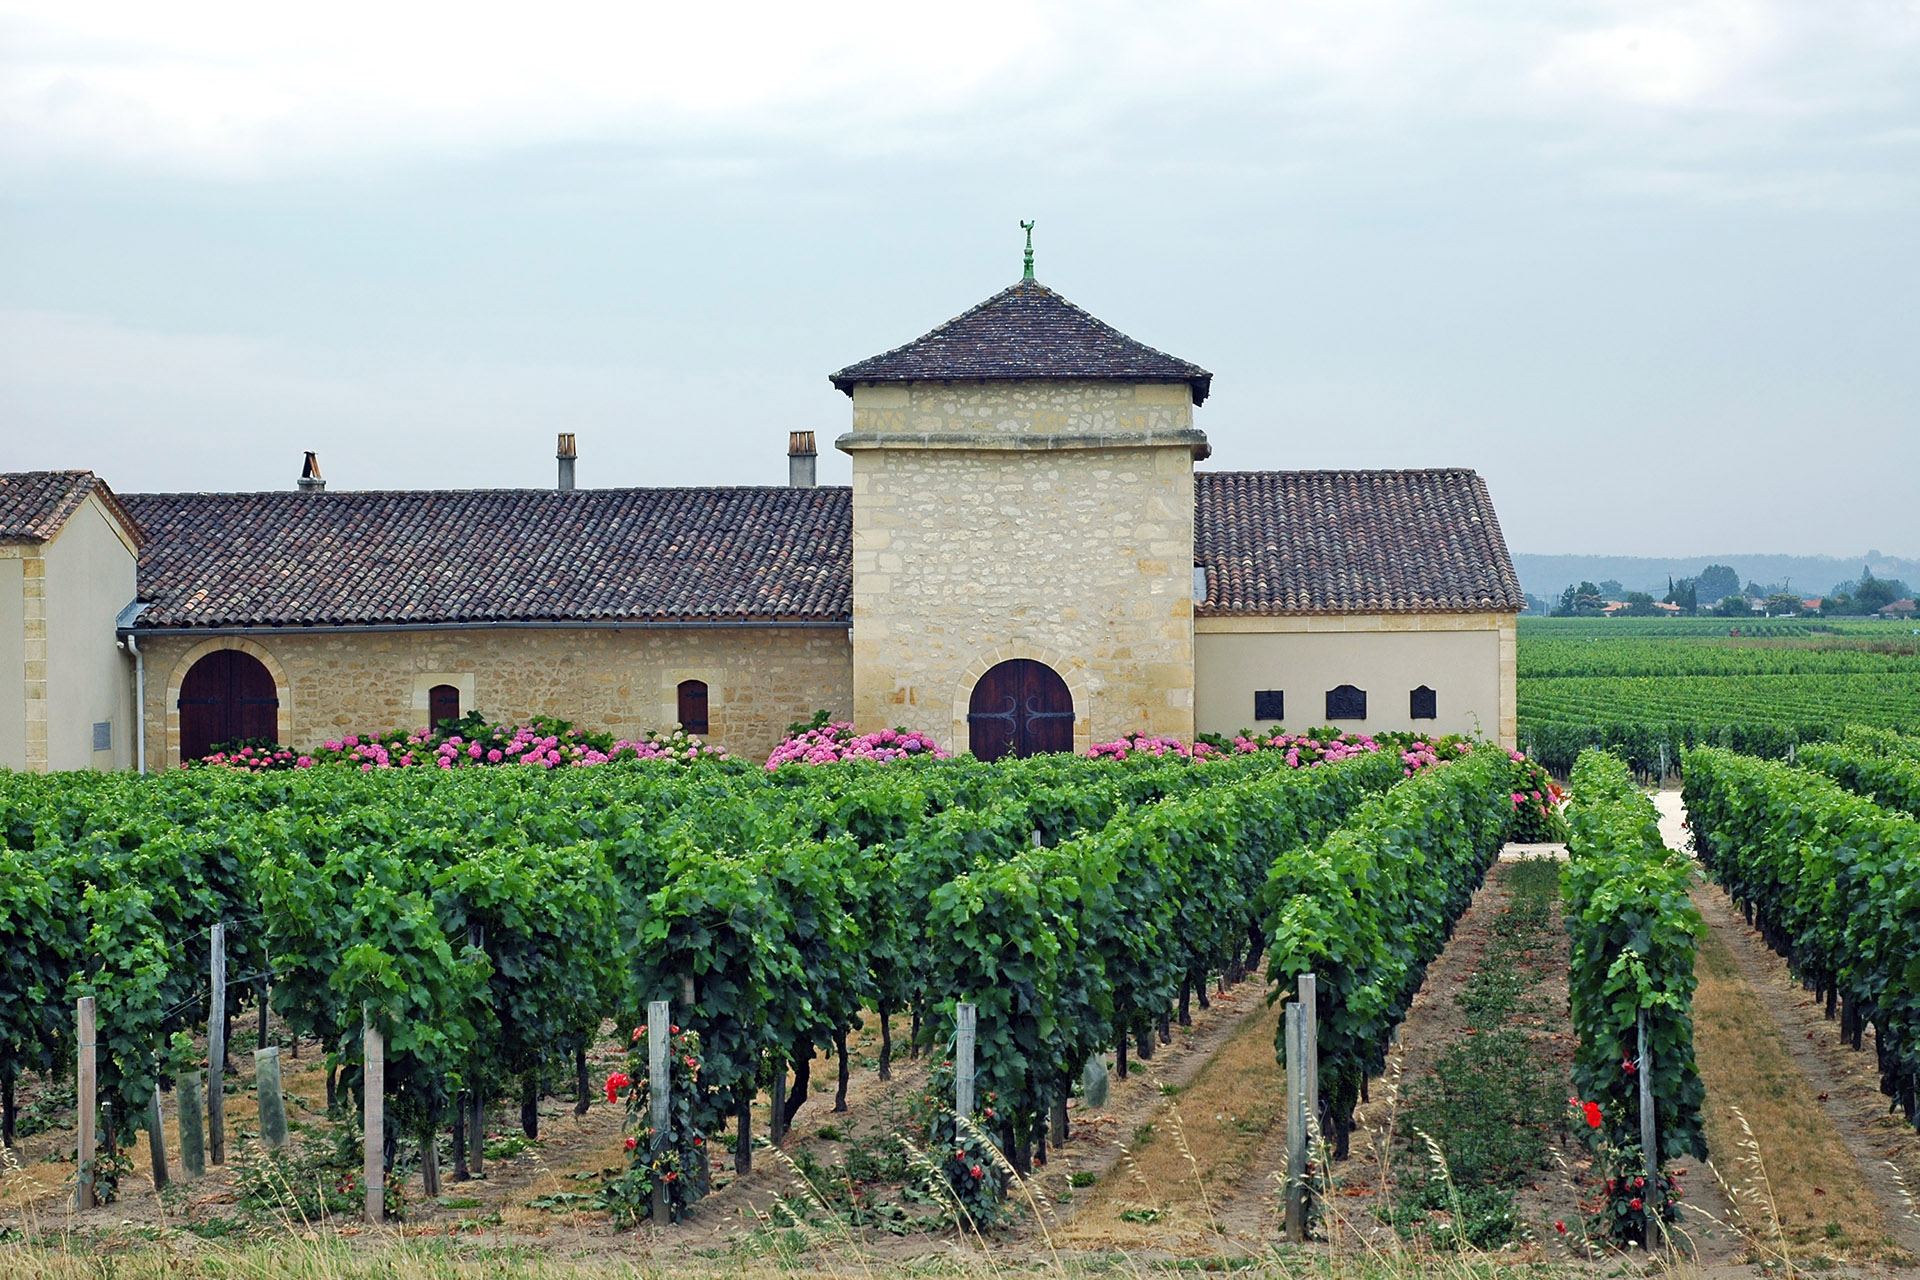 Vineyard and farmhouse in Bordeaux, France / Getty